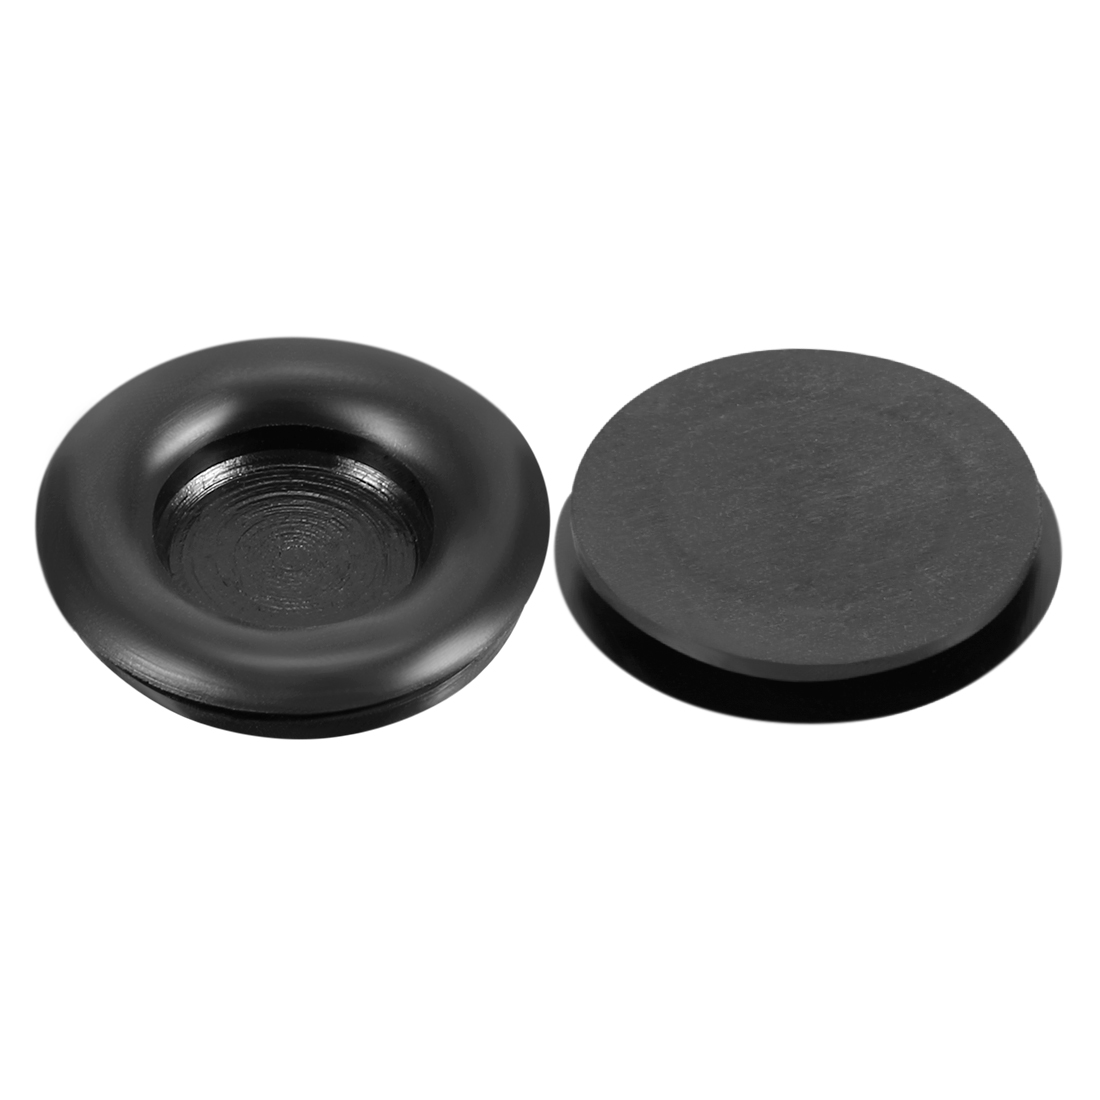 Wire Protector Oil Resistant Rubber Grommets 14mm Mounting Dia 20Pcs Black